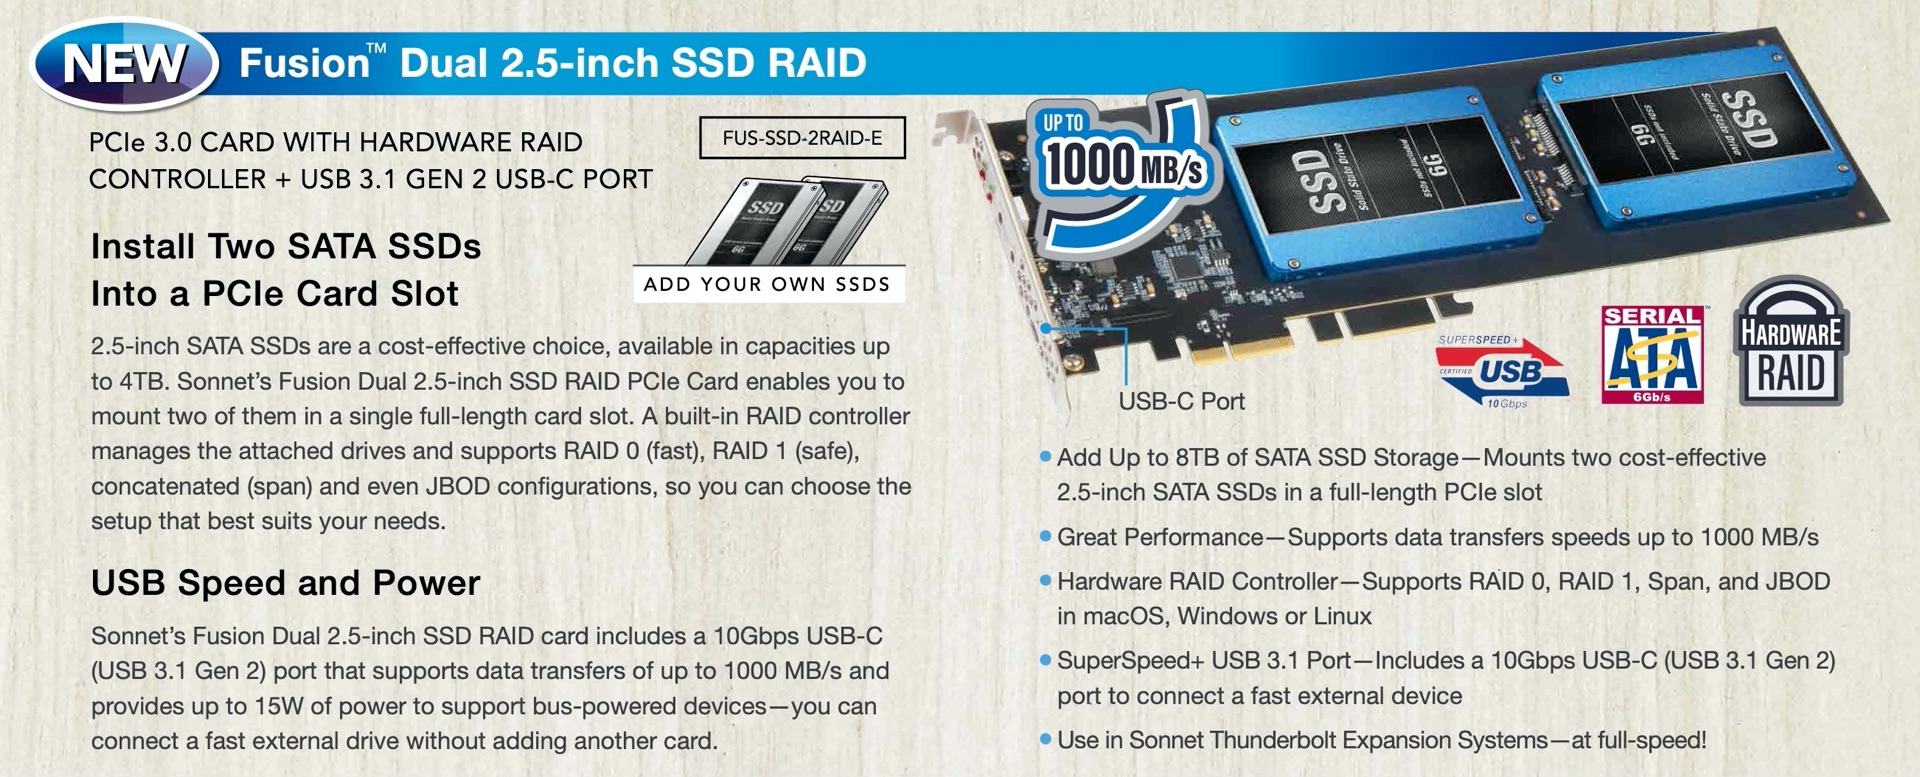 Fusion Dual 2.5-Inch SSD RAID Card OverView